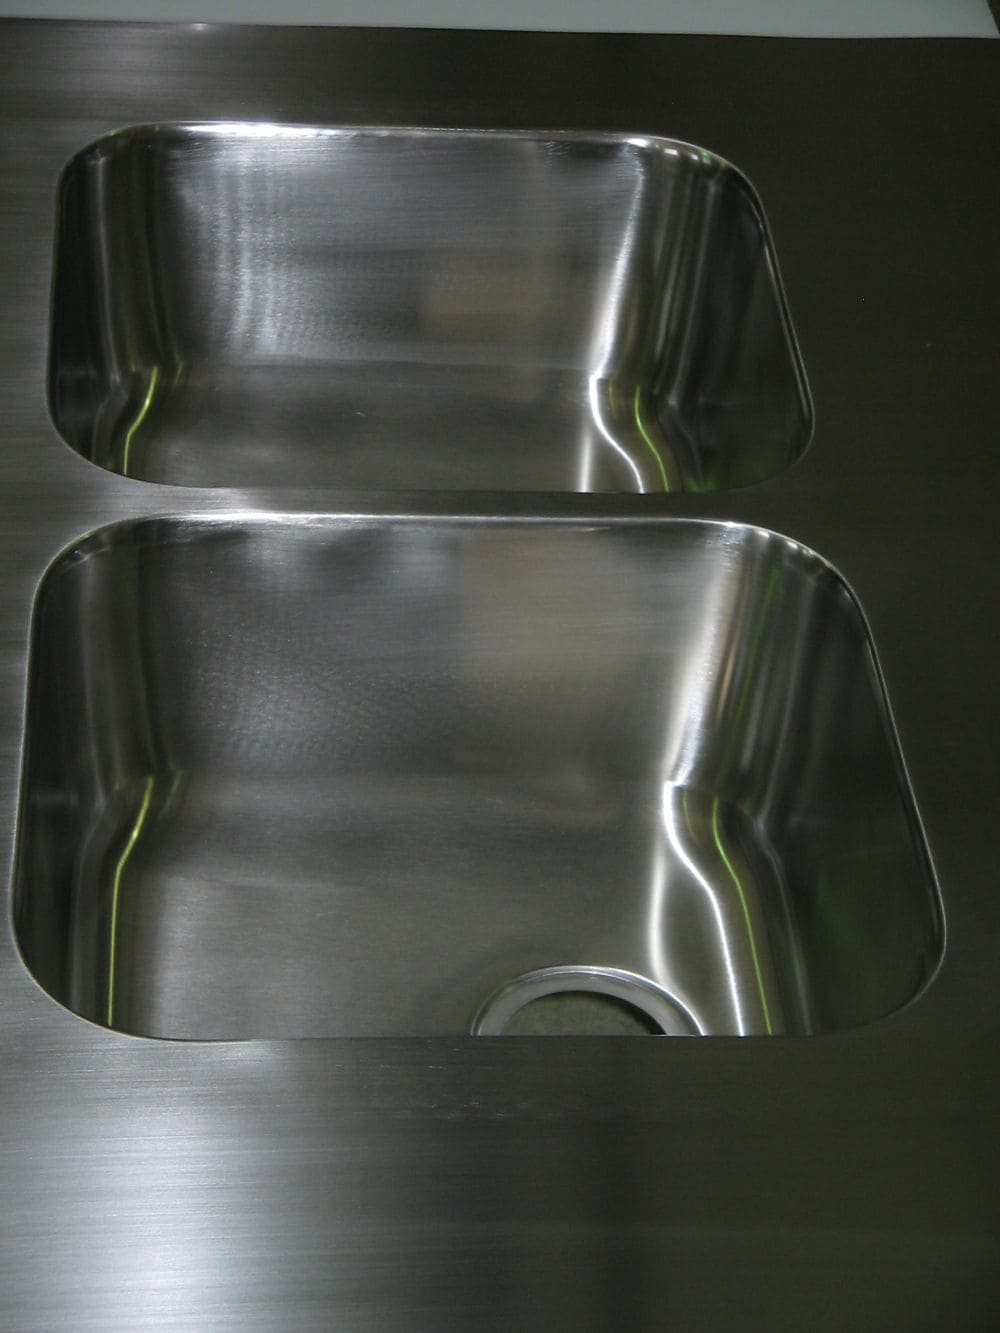 Concept metal products commercial kitchen equipment for Metal concept